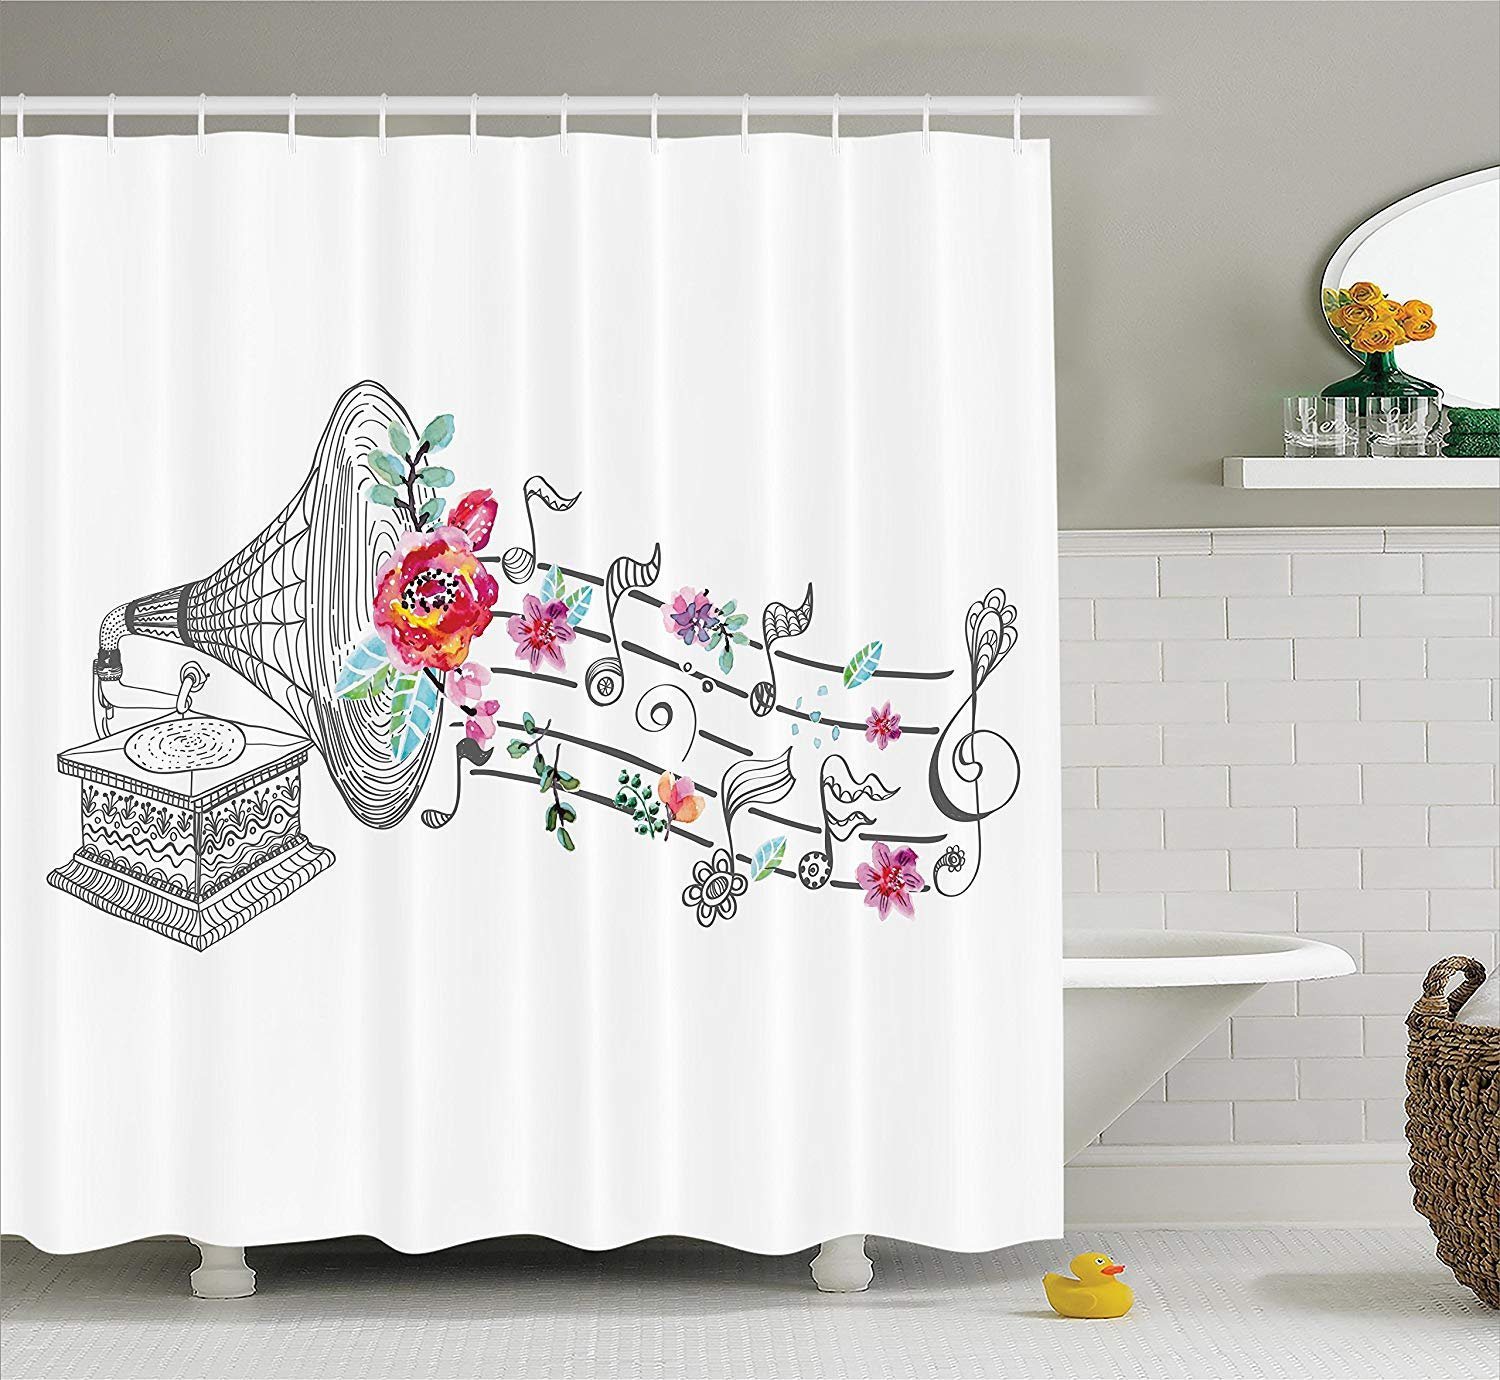 Printing Music Decor Shower Curtain Set, Vintage Gramophone Record Player with Floral Ornament Blossom Antique, Non Toxic, Eco-Friendly, No Chemical Odor for Bathroom set, 60 x 72 Inches Grey Pink